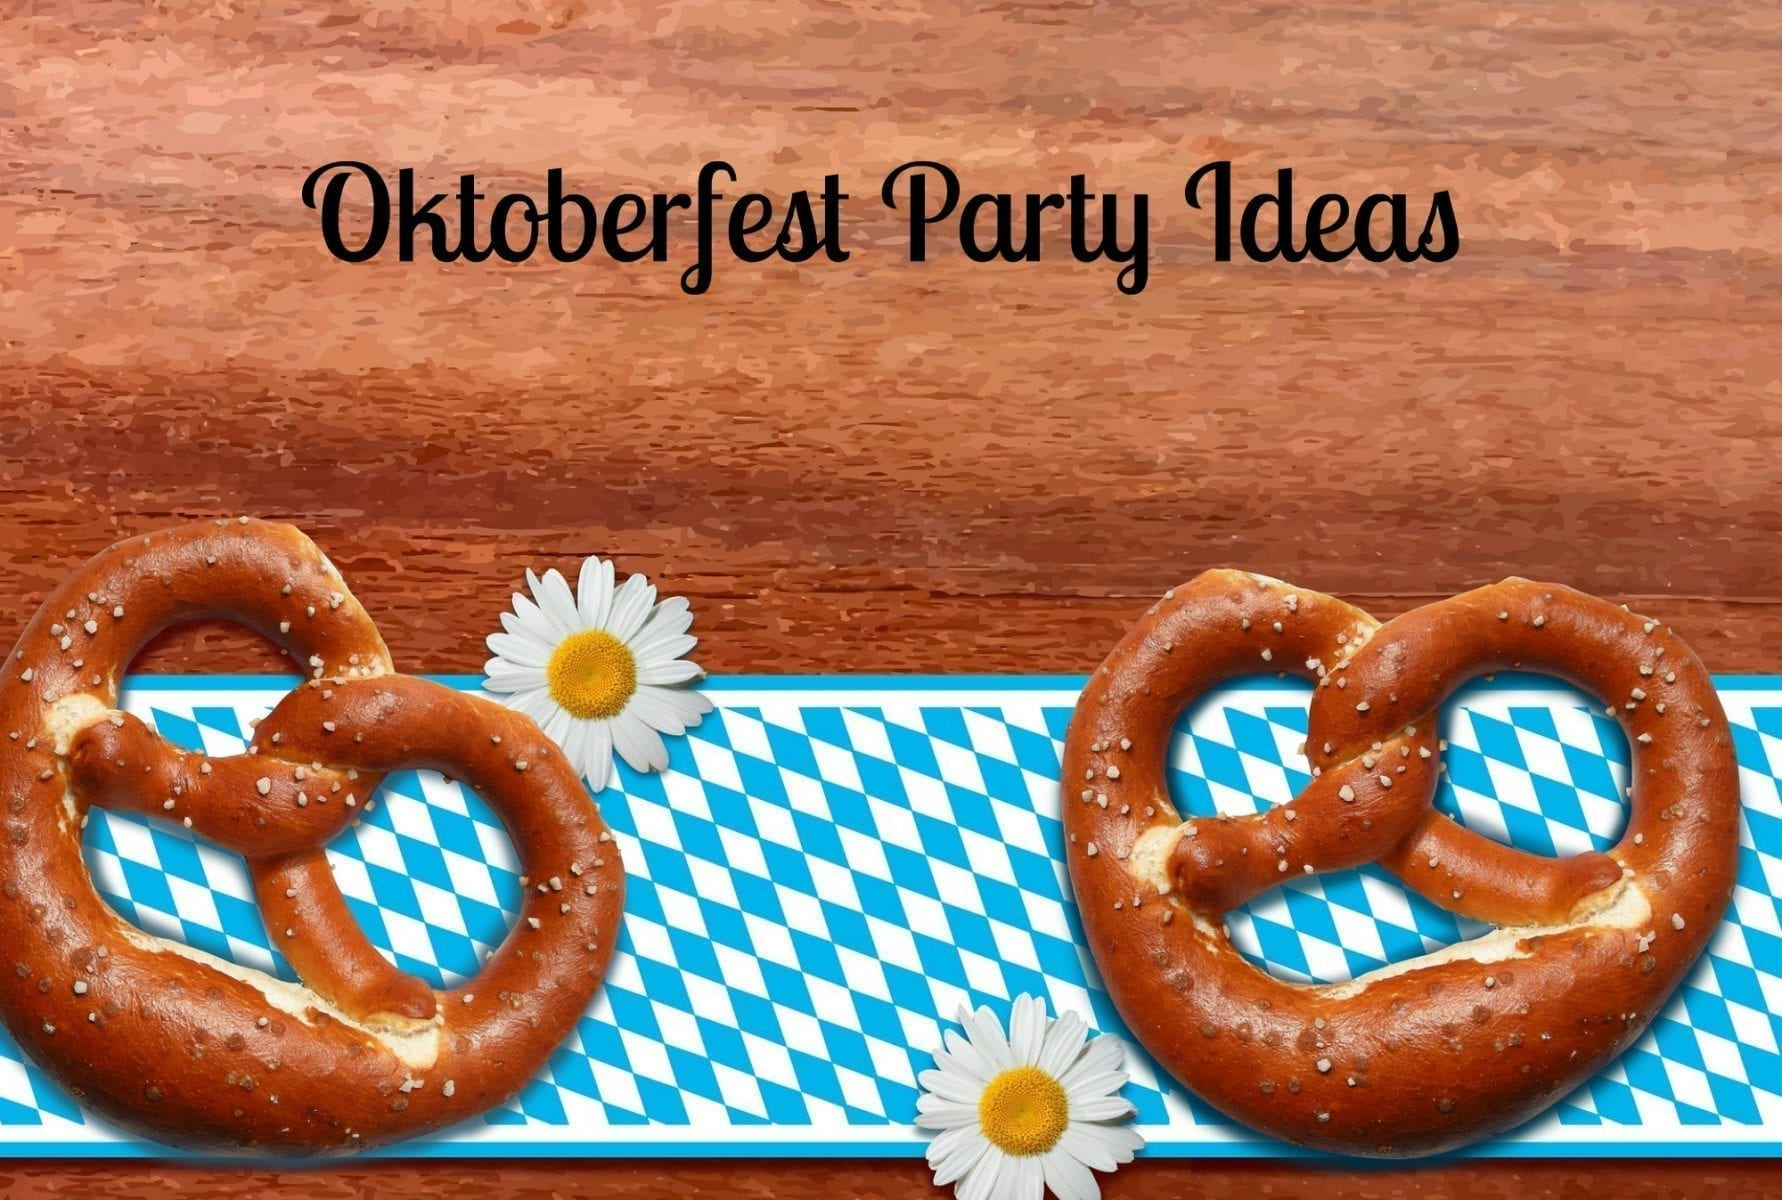 Oktoberfest Party Ideas- Plan An Oktoberfest Party!